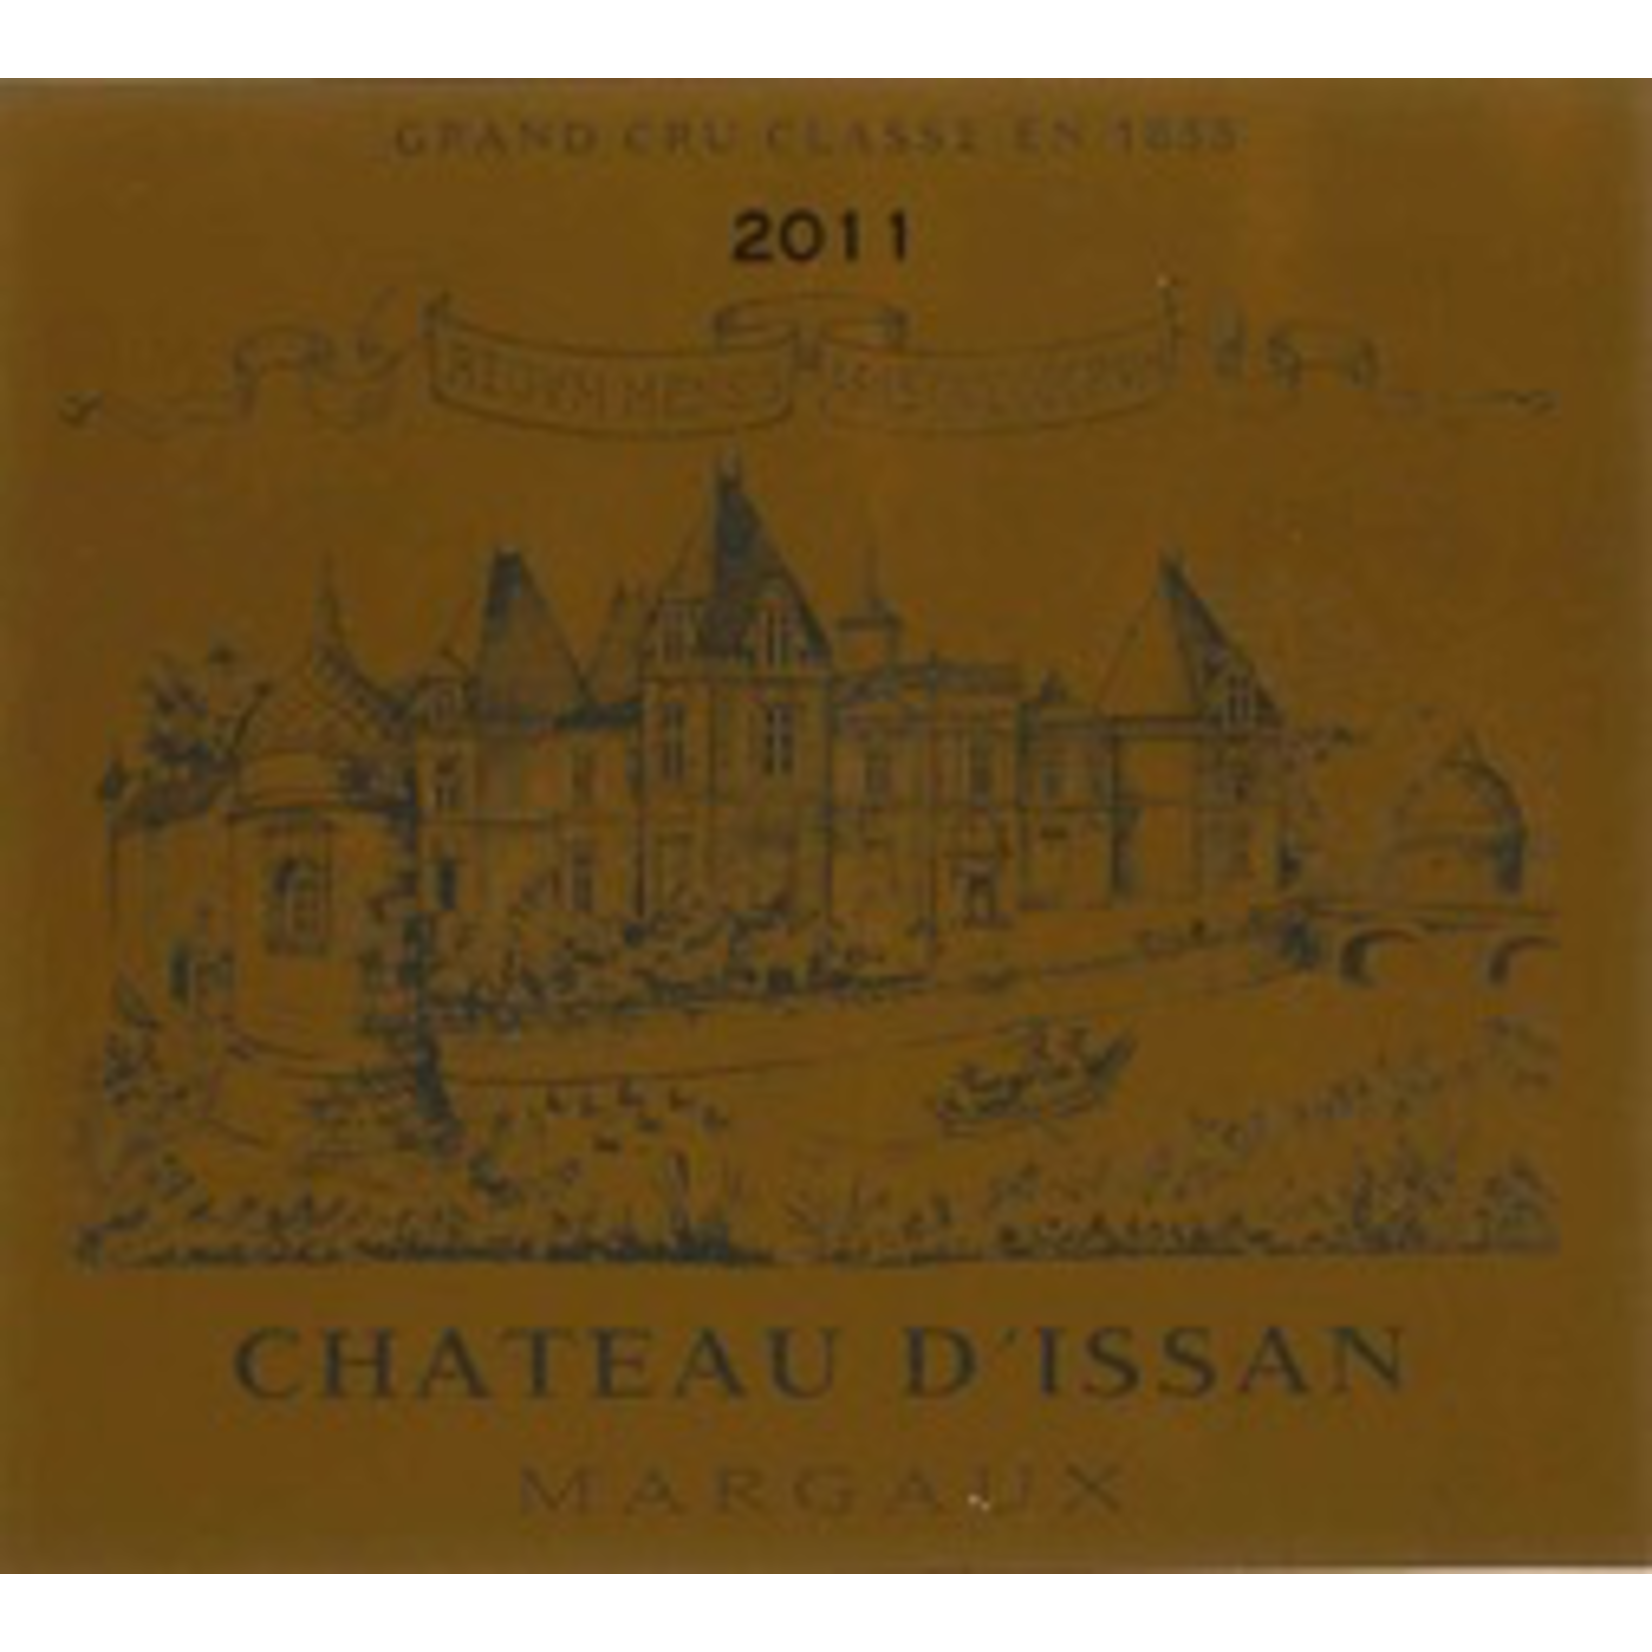 Wine Chateau d'Issan Margaux 2011